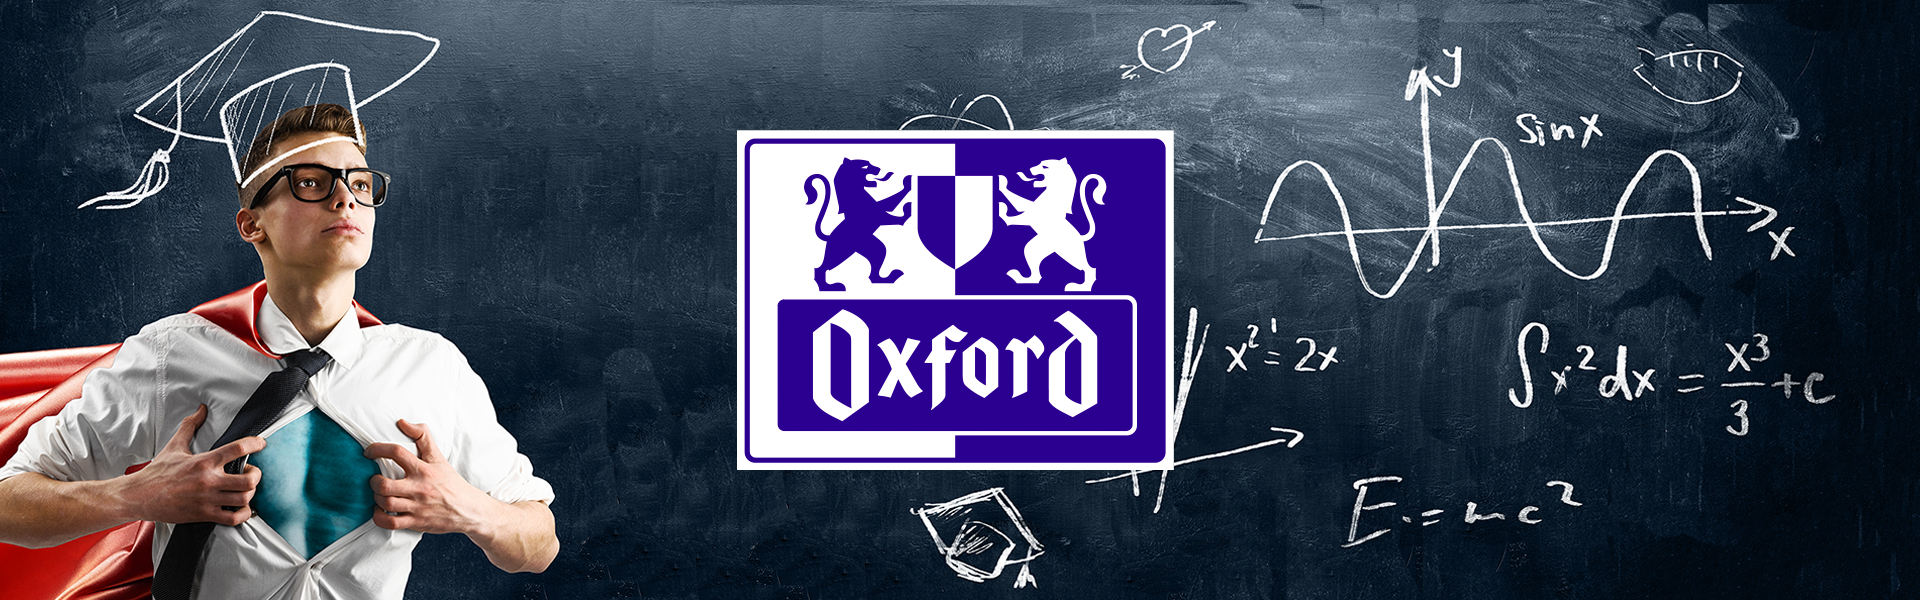 Oxford Brand Power in your Hands